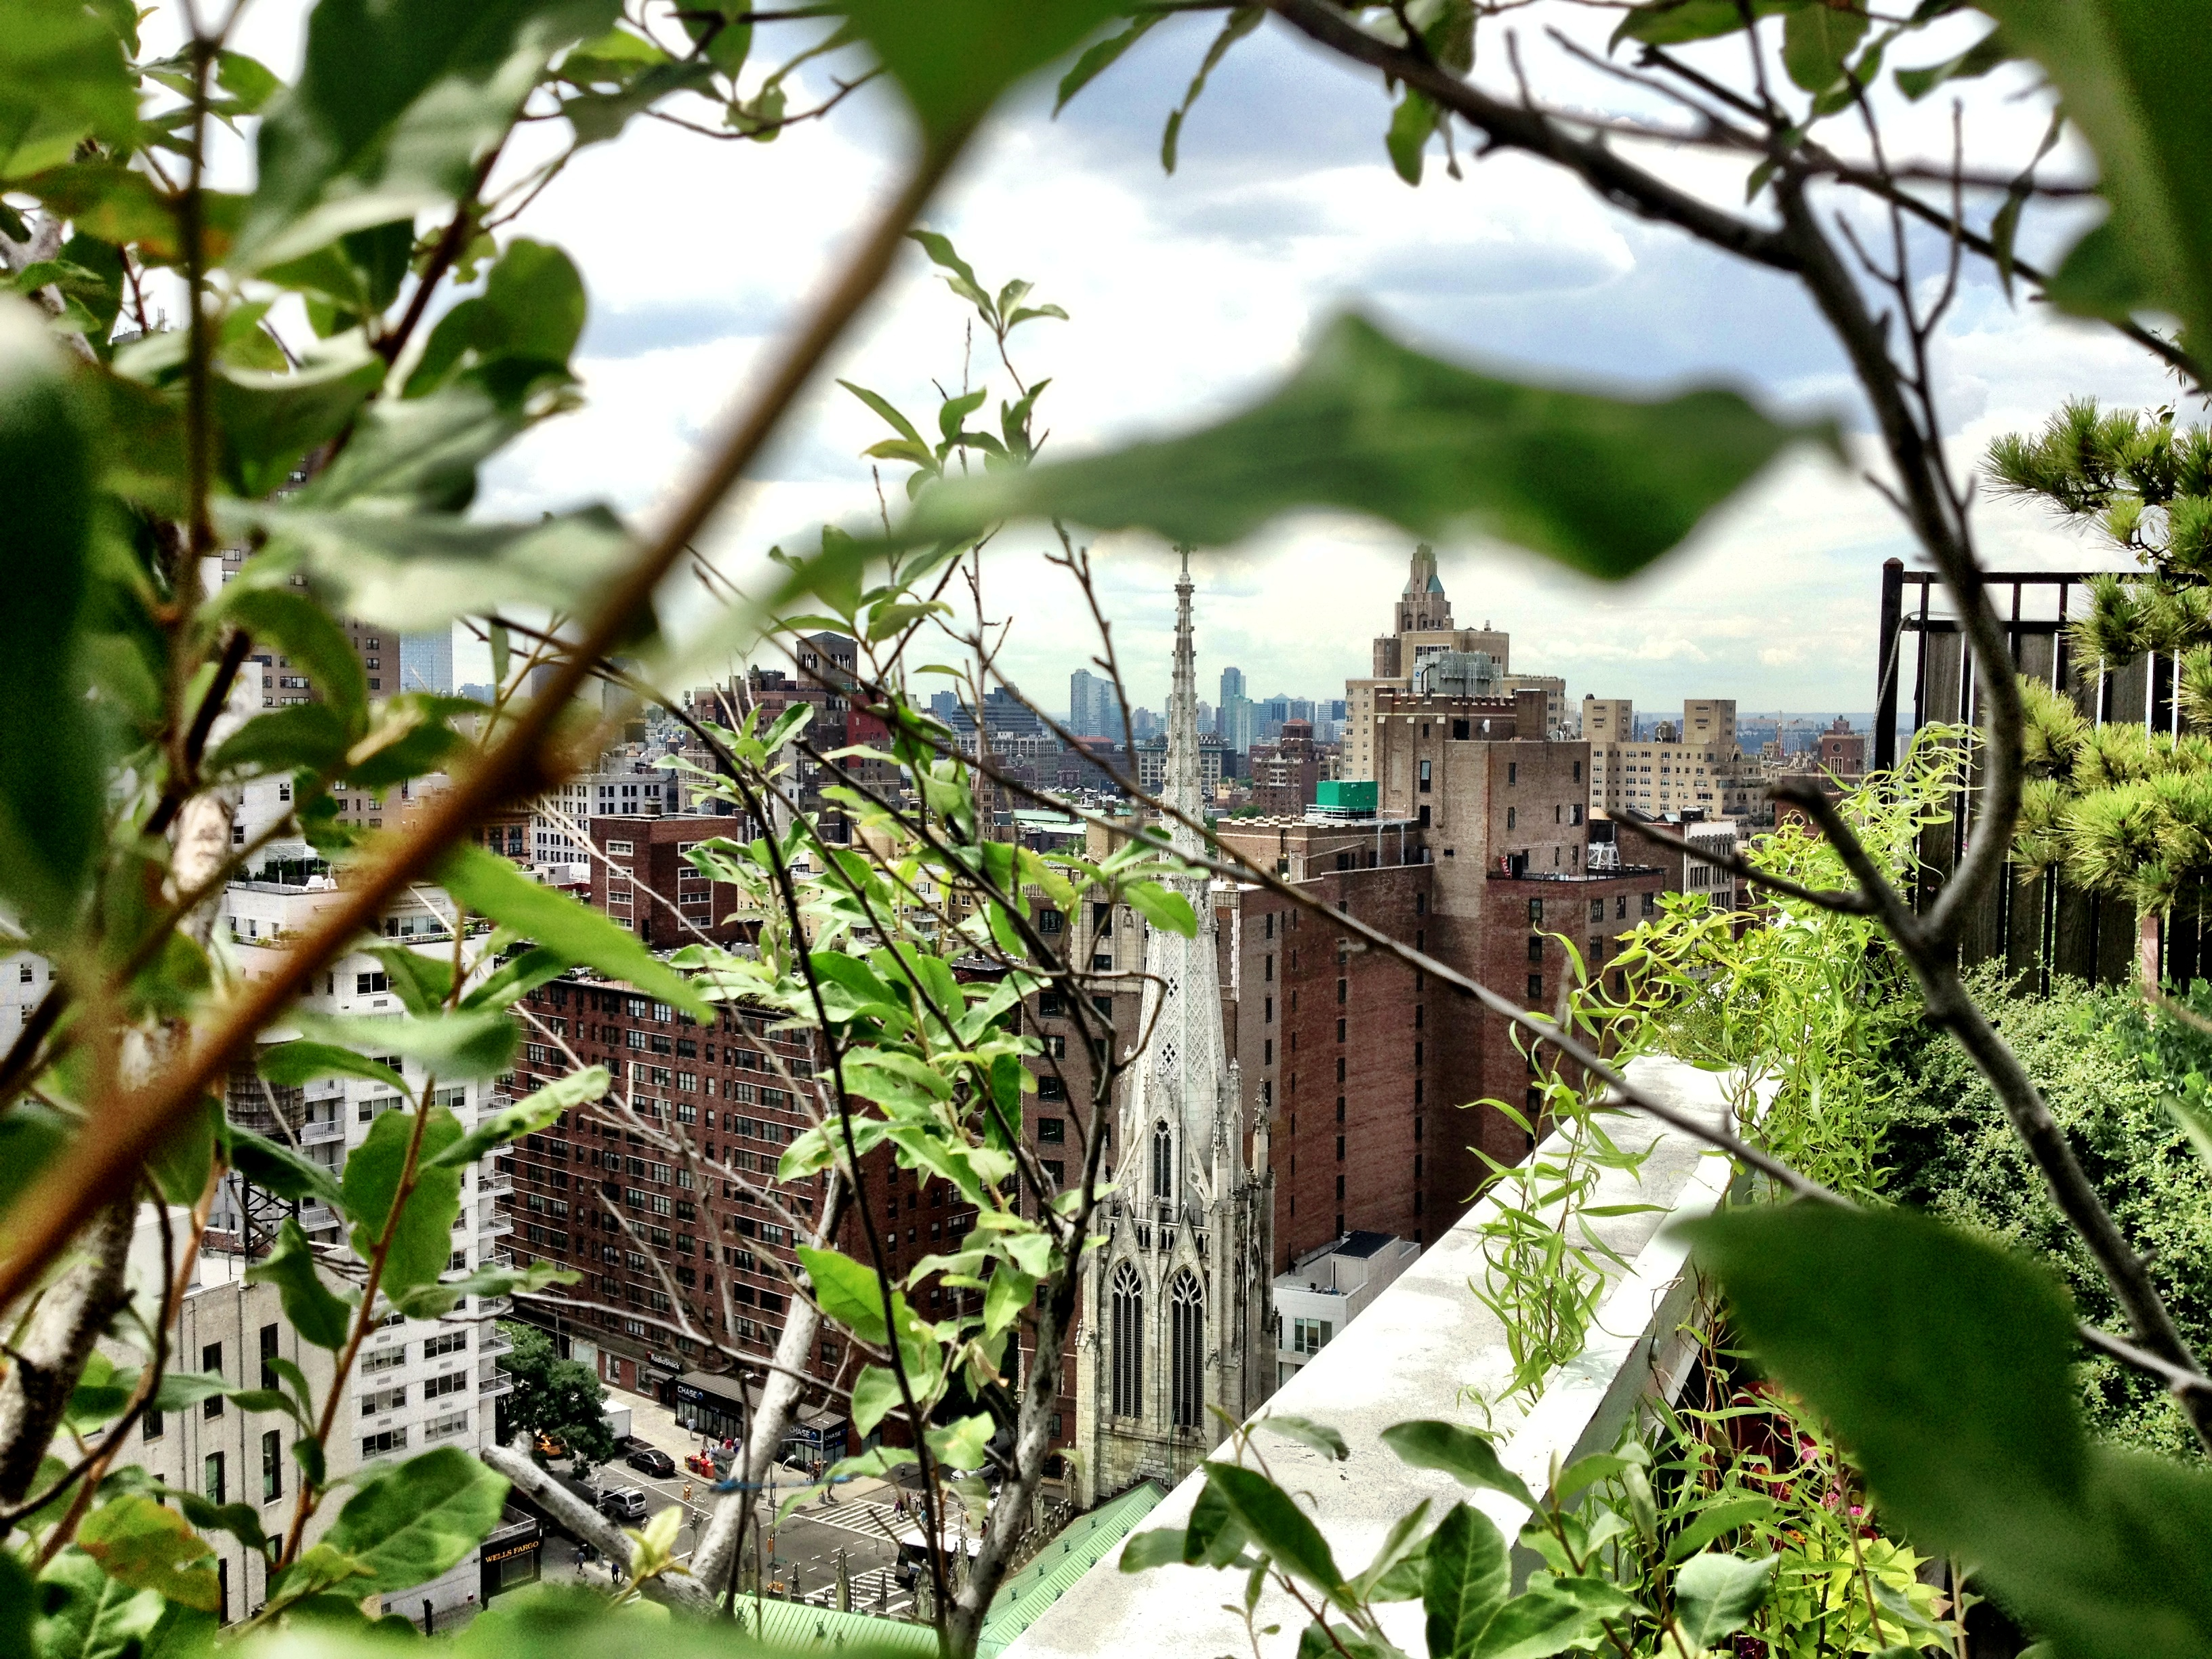 roof garden, new york city, greenwich village, nyc